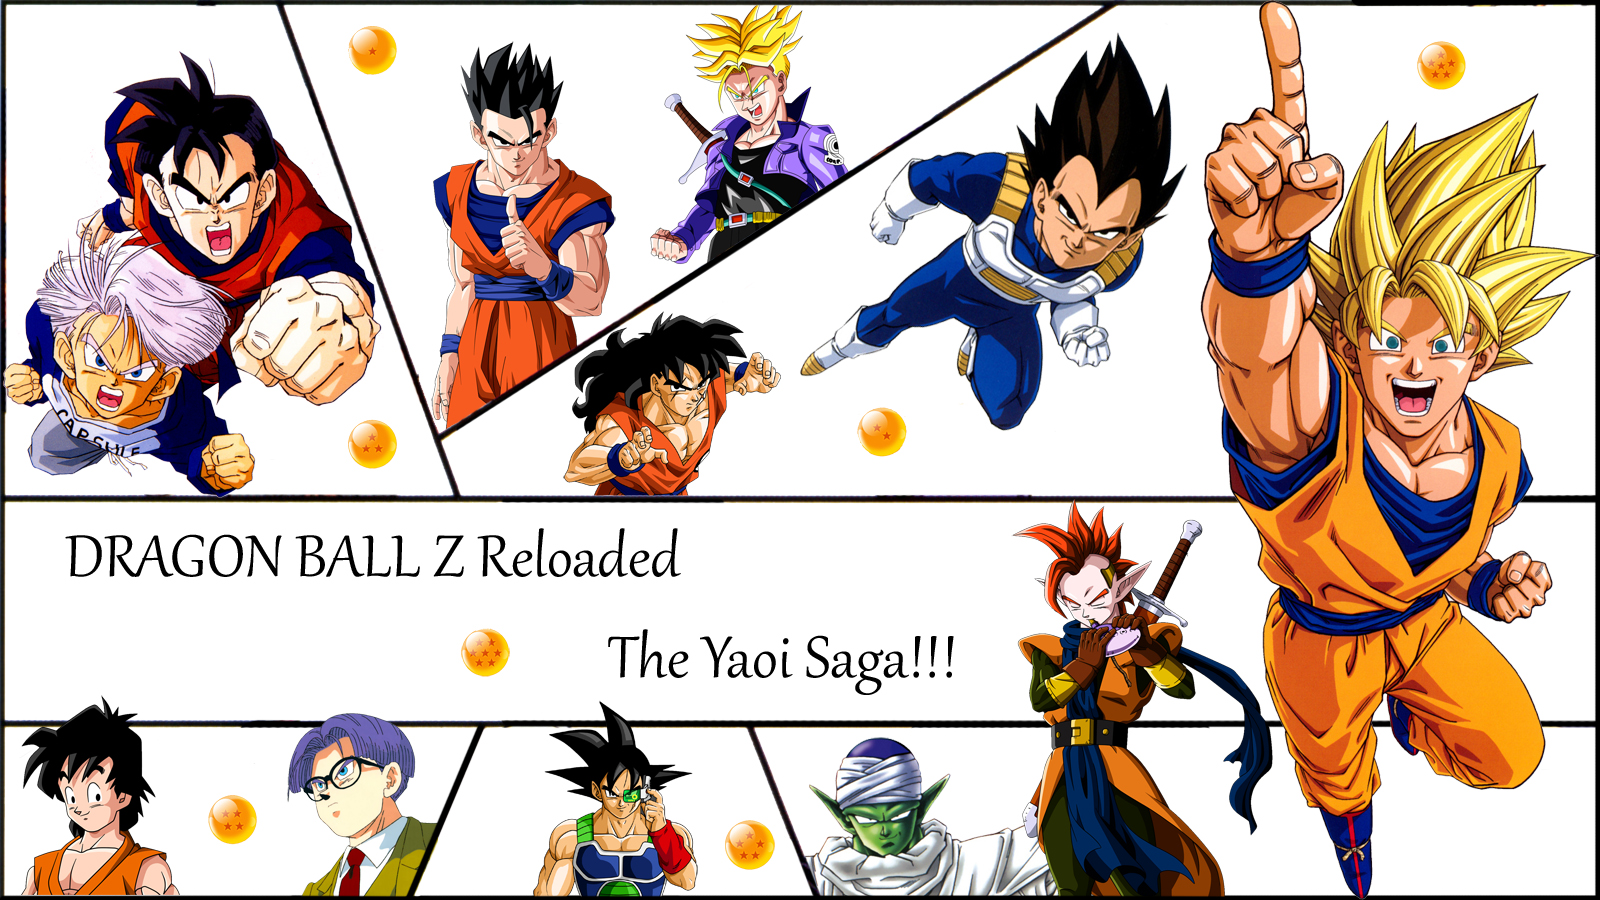 DBZ Collage-Lord Truhan-Pin ups-ibDBZ Reloaded-b The Yaoi Saga -i-Pic222